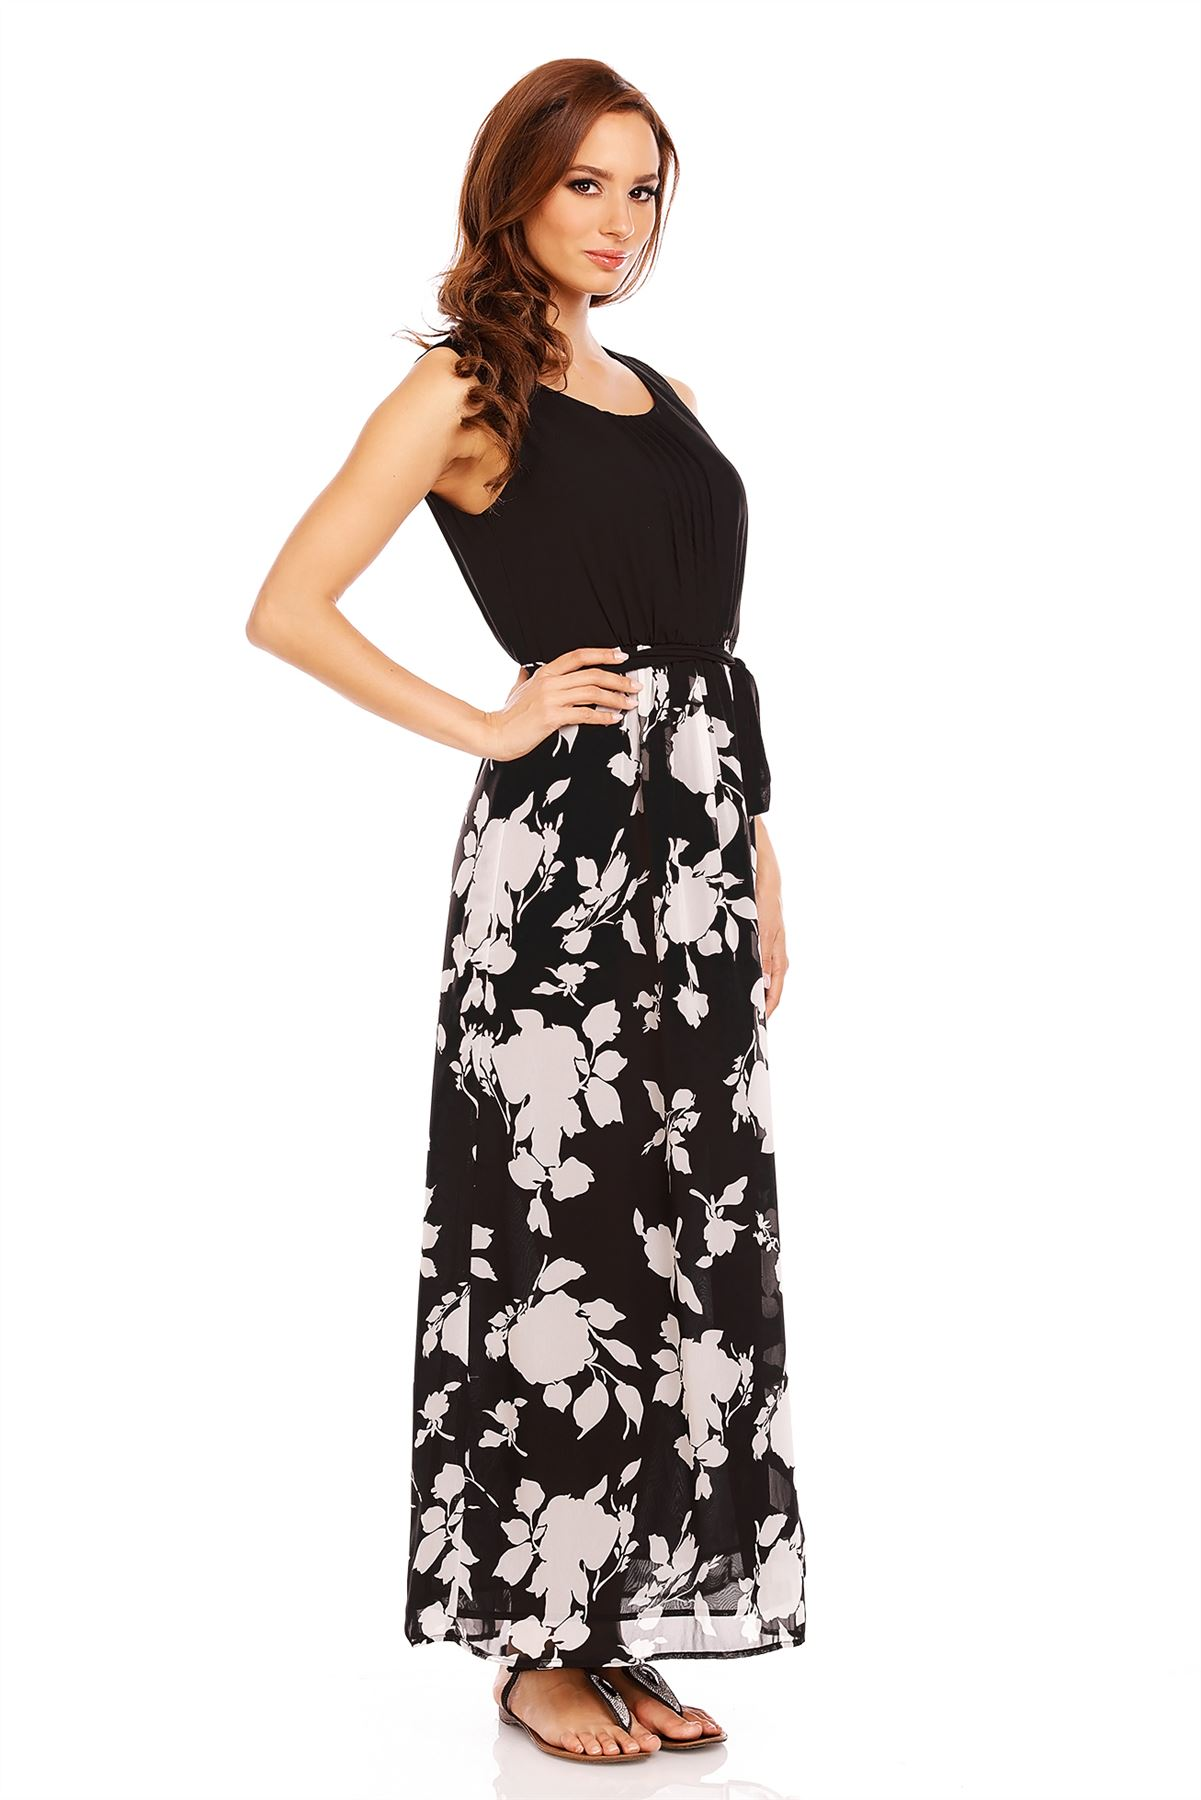 Women's Summer & Maxi Dresses. Every woman needs the perfect summer dress! From casual long maxis and short cotton dresses to cute cocktail dresses and pretty bridesmaid outfits, our selection features styles for every occasion. Choose beautiful strapless ball dresses made from tulle and chiffon to stand out at summer weddings.